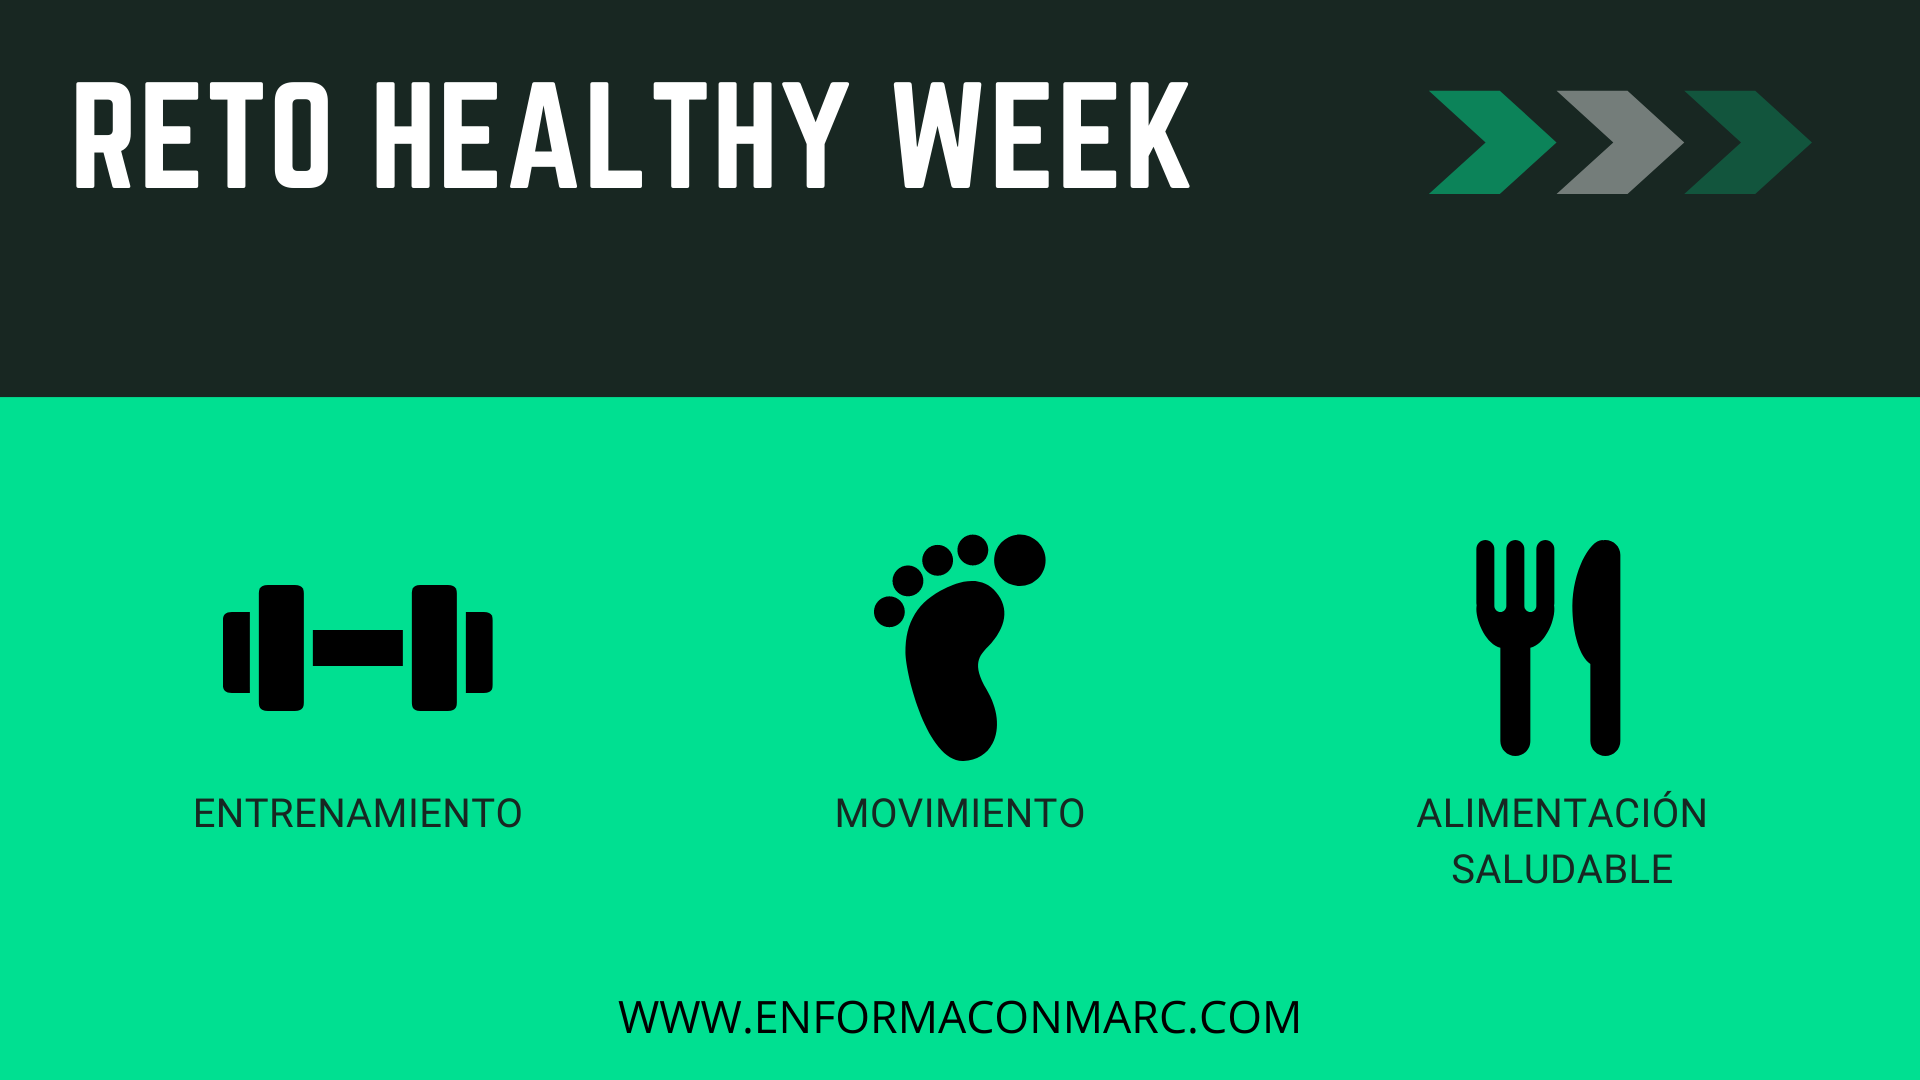 reto healthy week